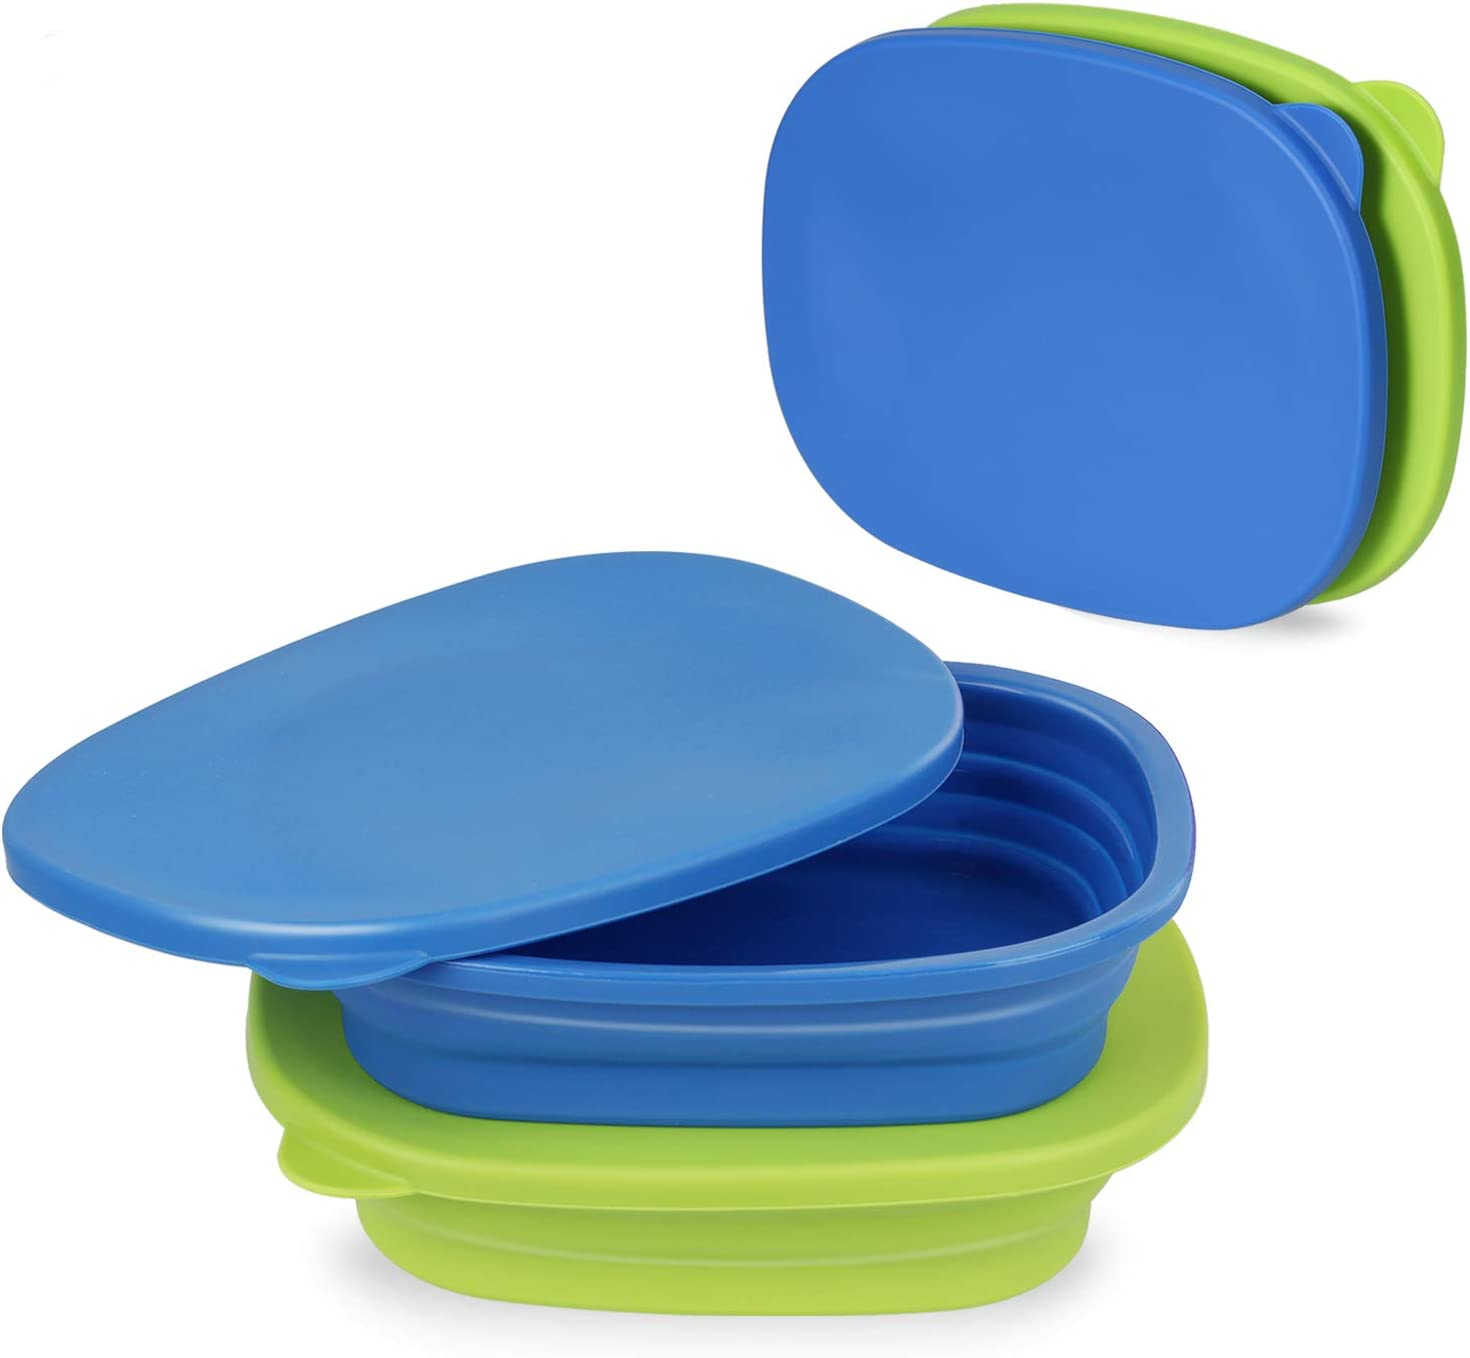 RASHDOM Oven and Microwave Silicone Collapsible Bowl, Camping Bowls, Lunch Box, Collapsible Silicone Food Storage Container with Lid for Outdoor Travel Hiking Home Office, 800ml/27oz (Blue+Green)